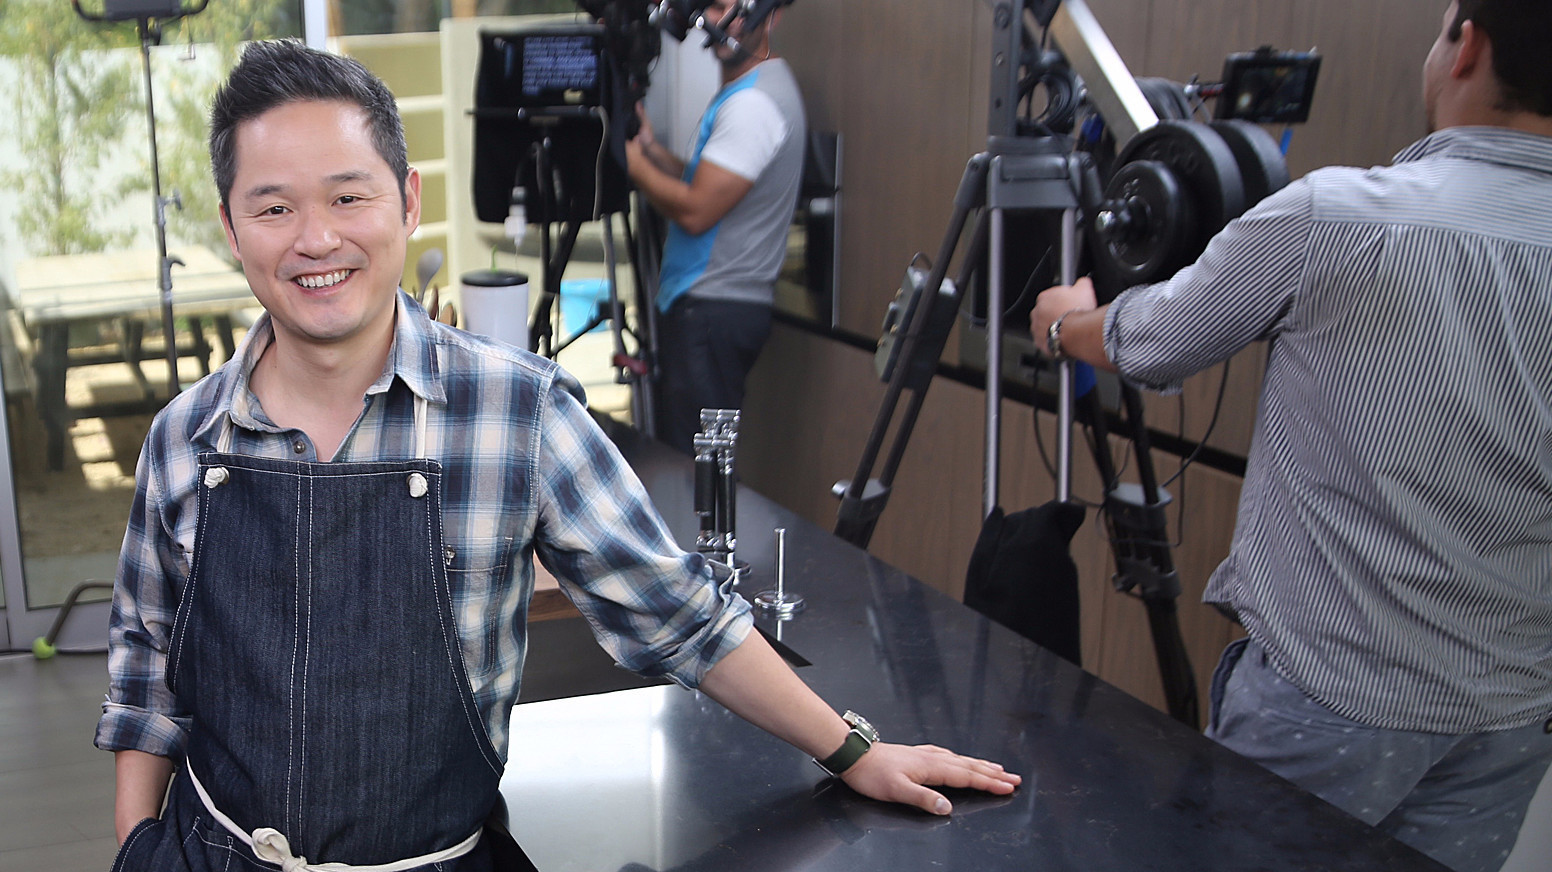 Lifestyle guru Danny Seo is spreading his passion for green living